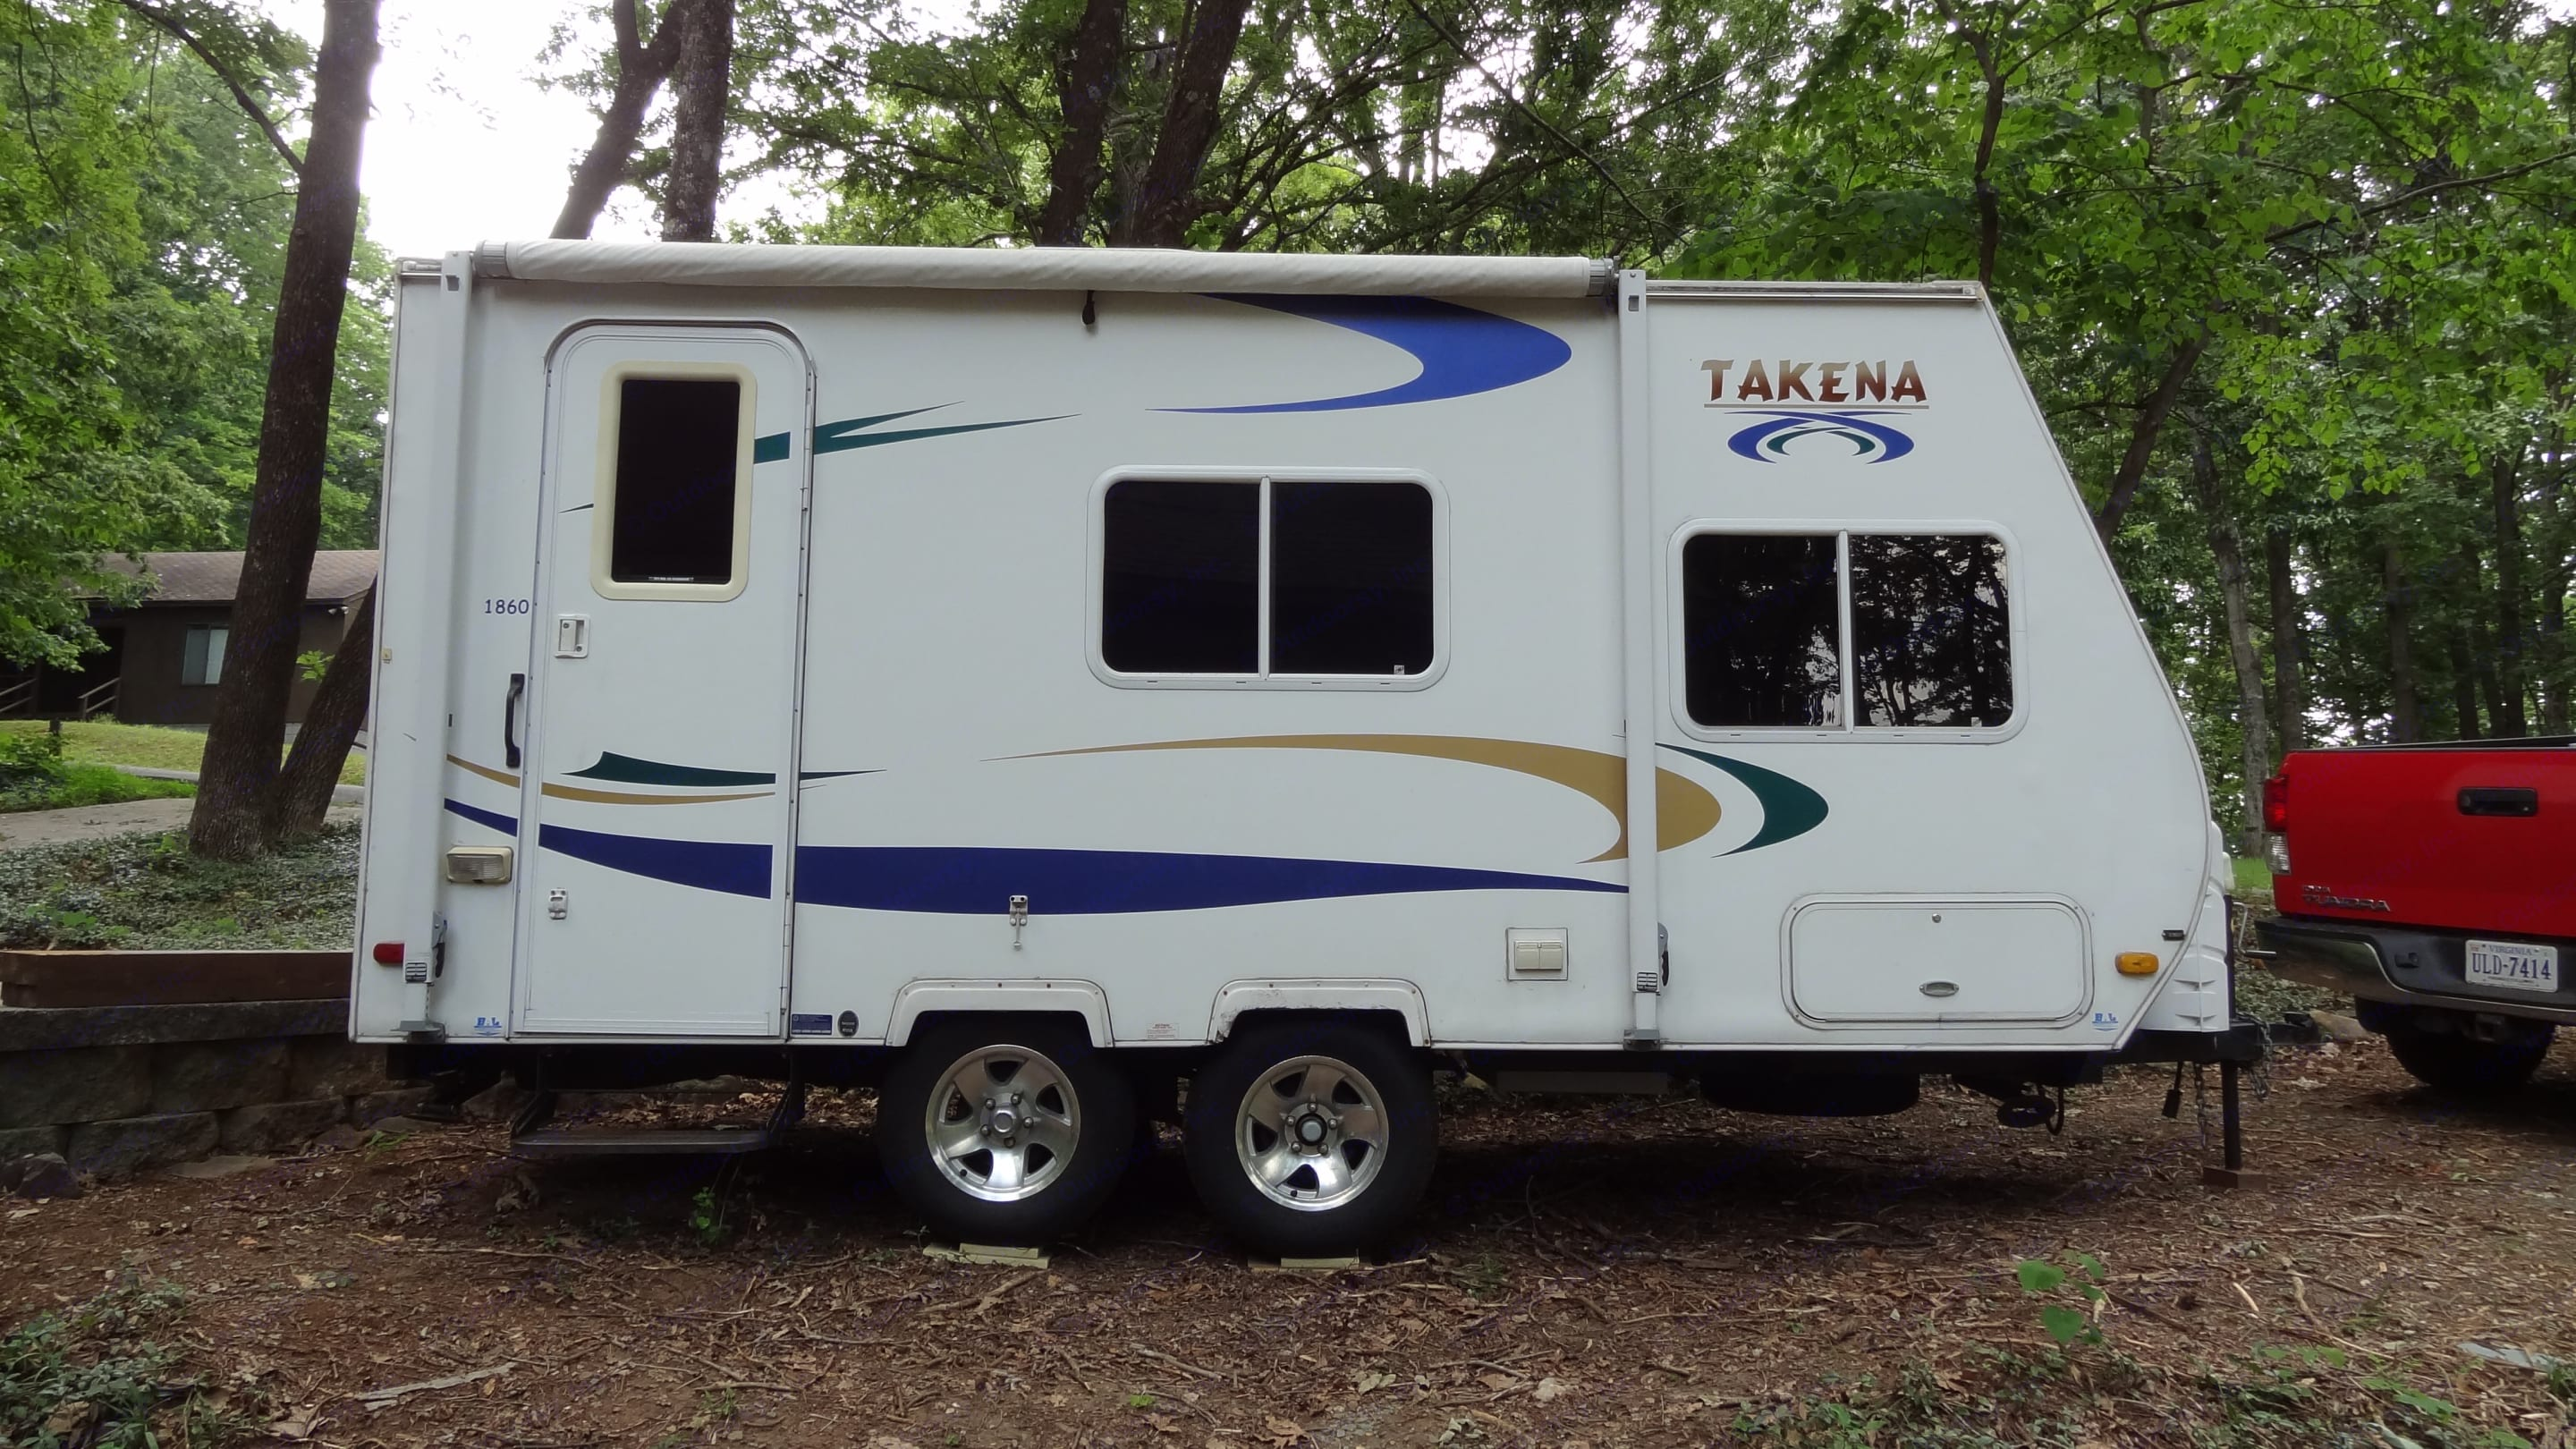 The Takena 1860 weighs just 2700 lbs dry, so it's tow-able by most pickups and SUV's. Four brand new GT Radial tires, too.. Chalet Rv Takena 1860 2008